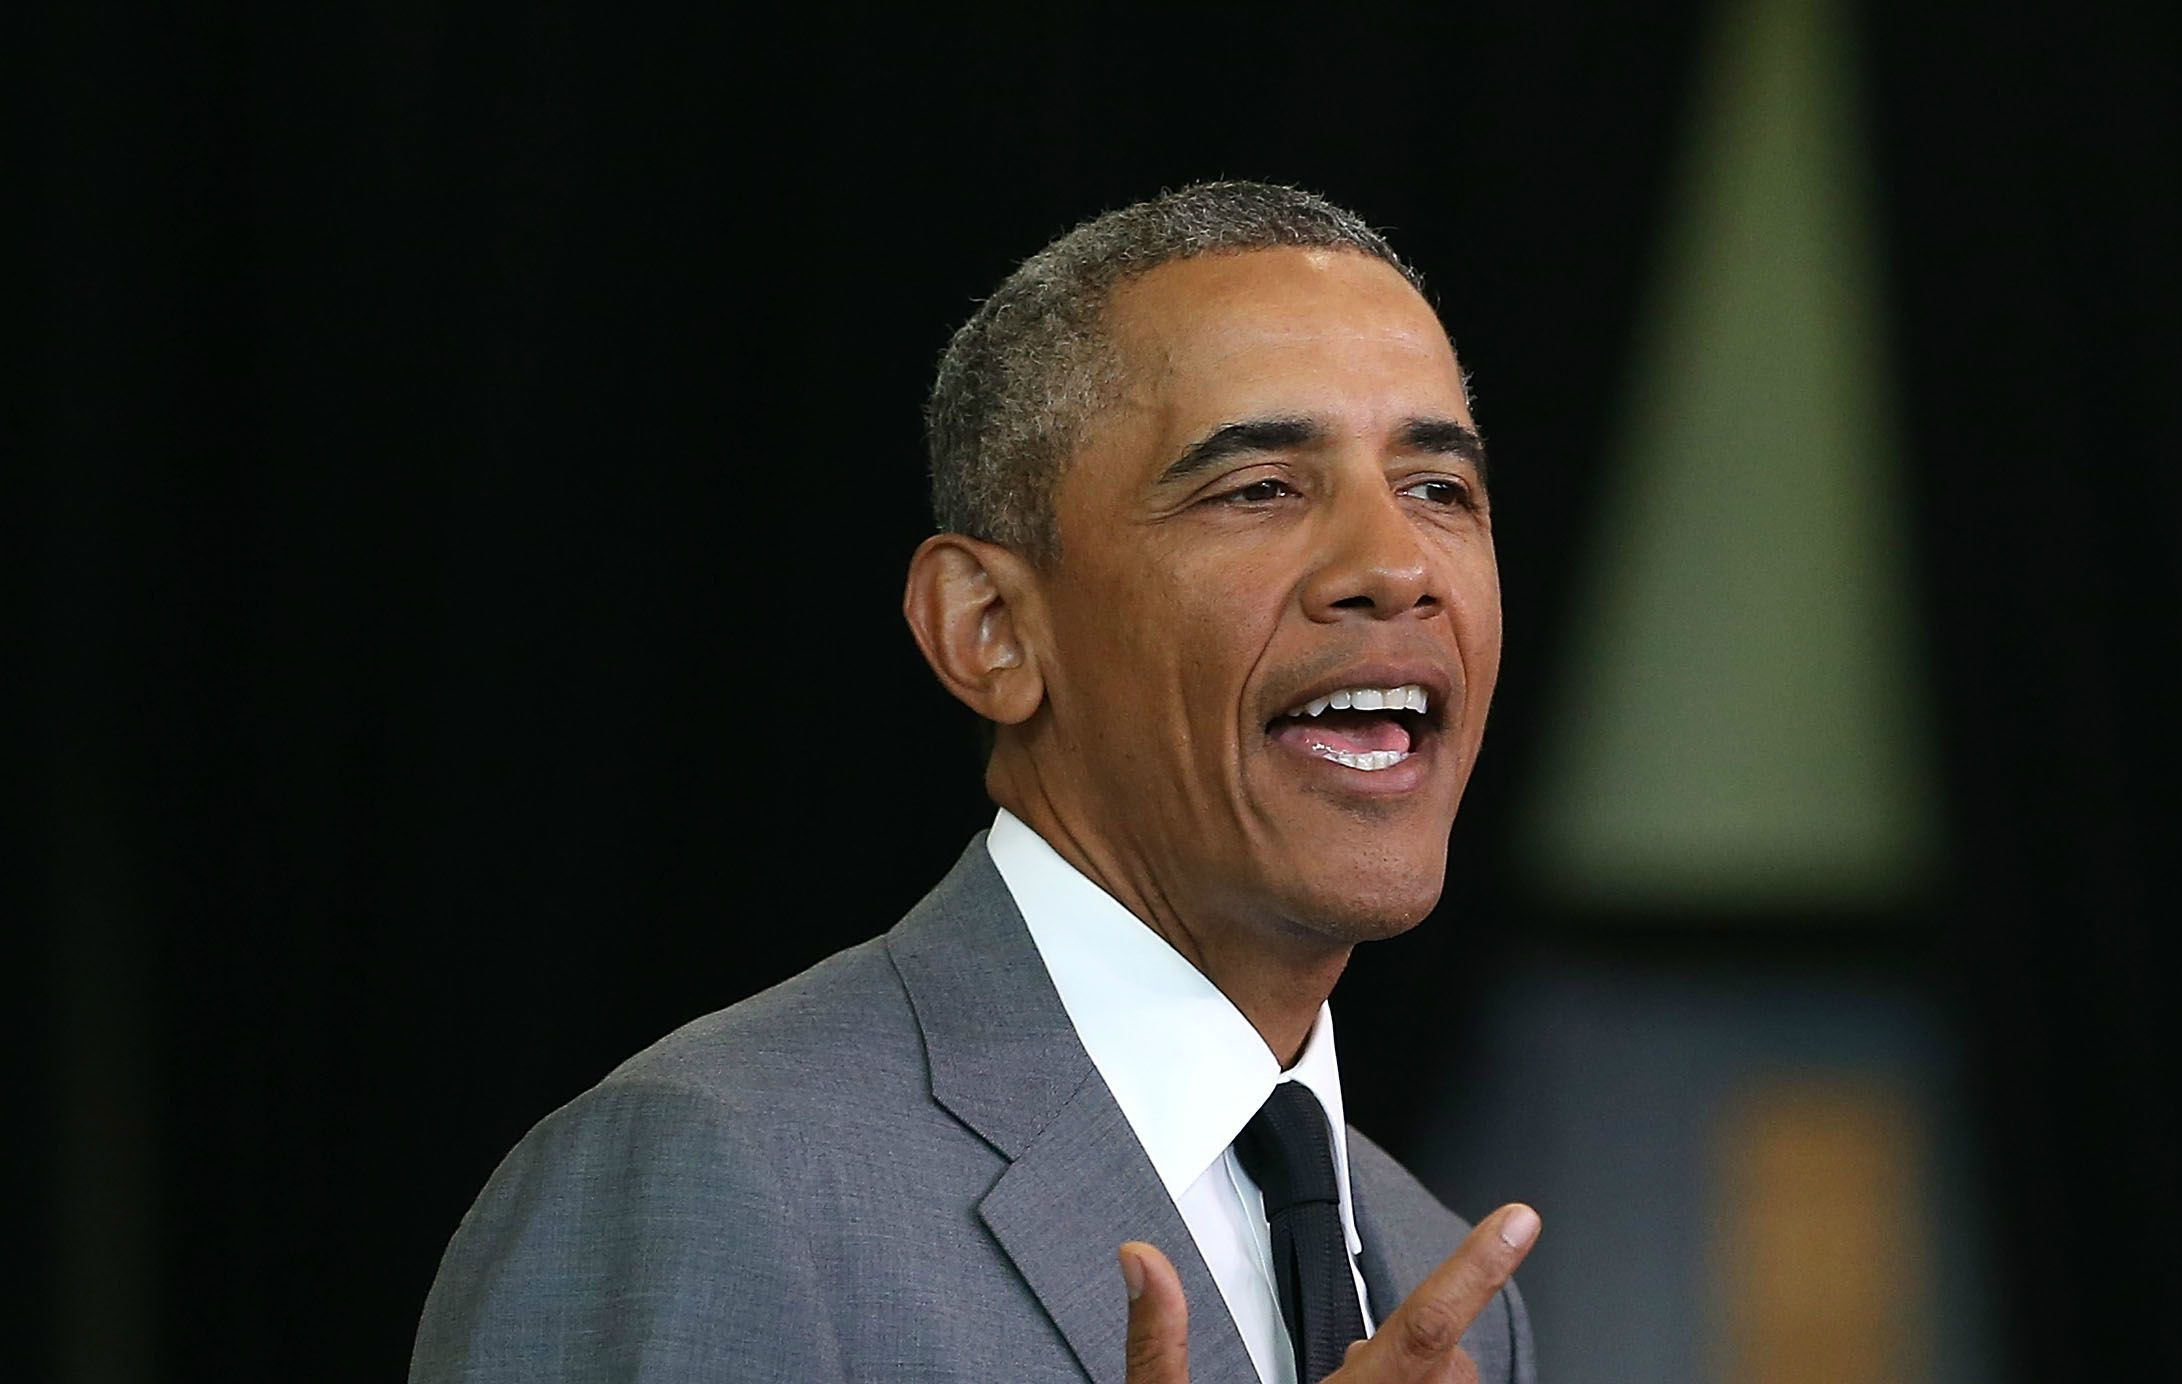 barrack obama President barack and michelle obama could be walking the red carpet at the next oscars and golden globes and not as guests, but nominees netflix confirmed monday in a tweet they're partnering up with the obamas on a multi-year agreement where barack and michelle will produce films and series.